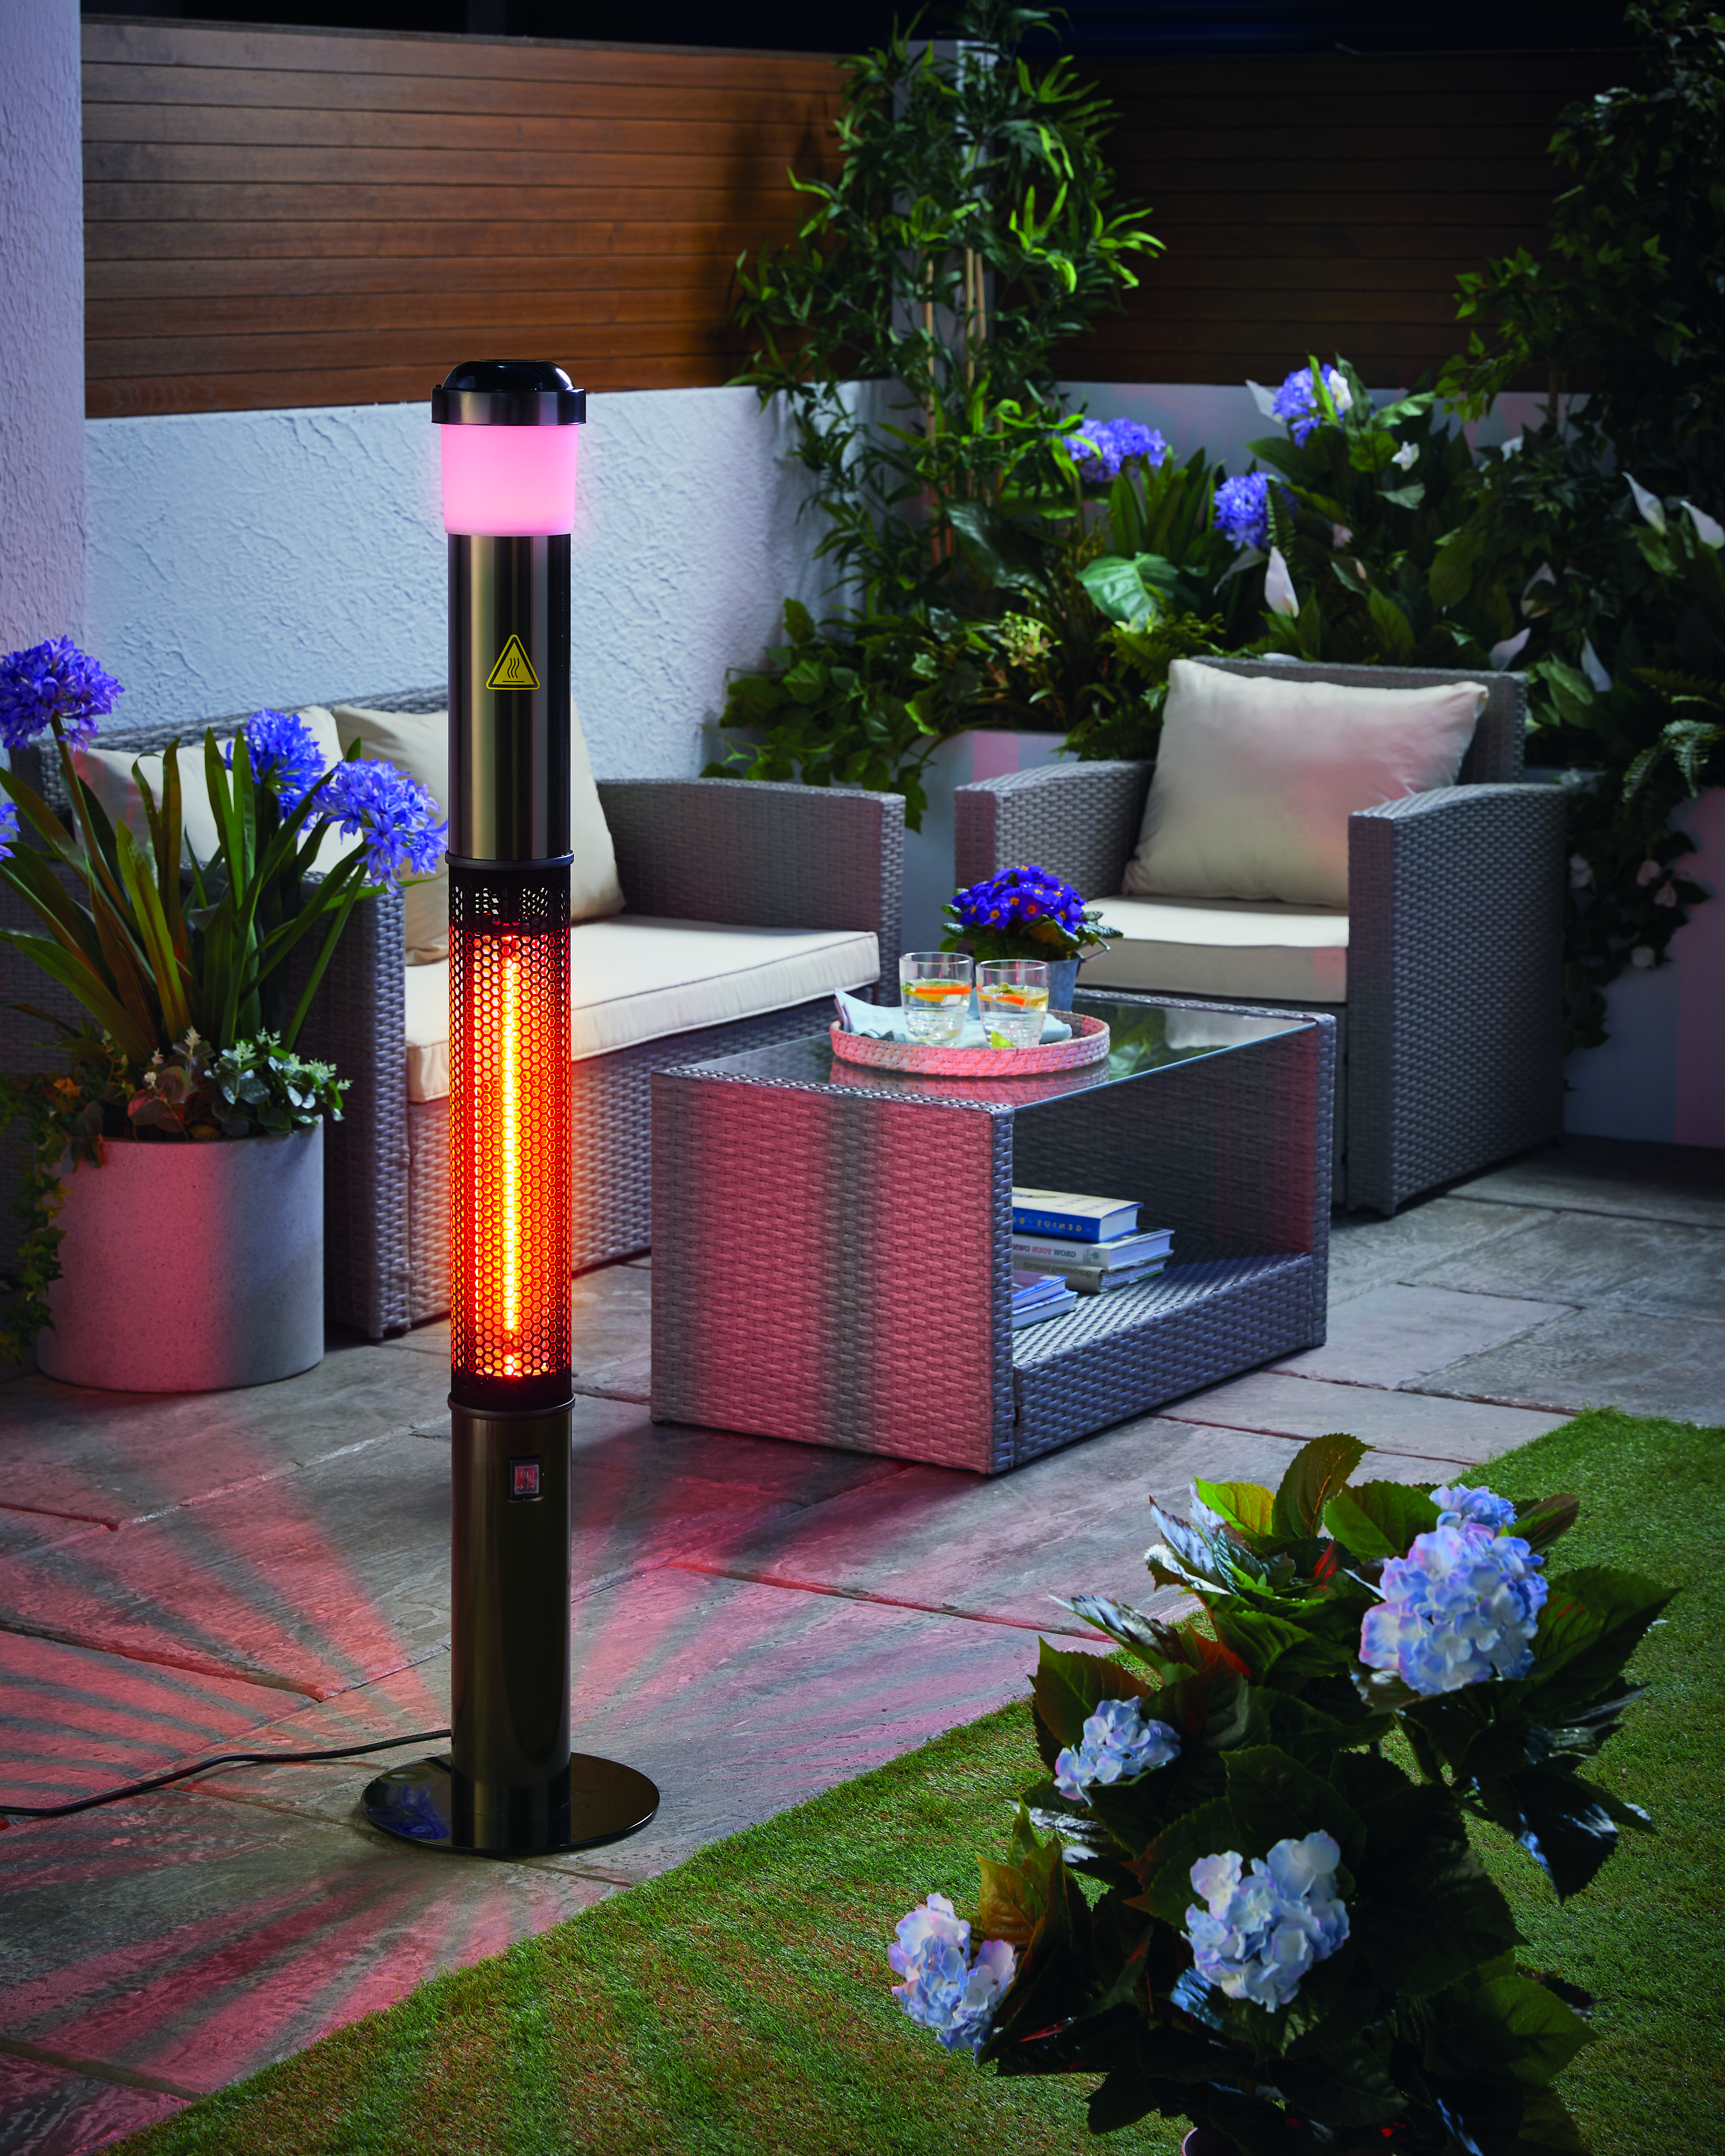 This patio heater is only £99.99 from Aldi. Credit: Aldi